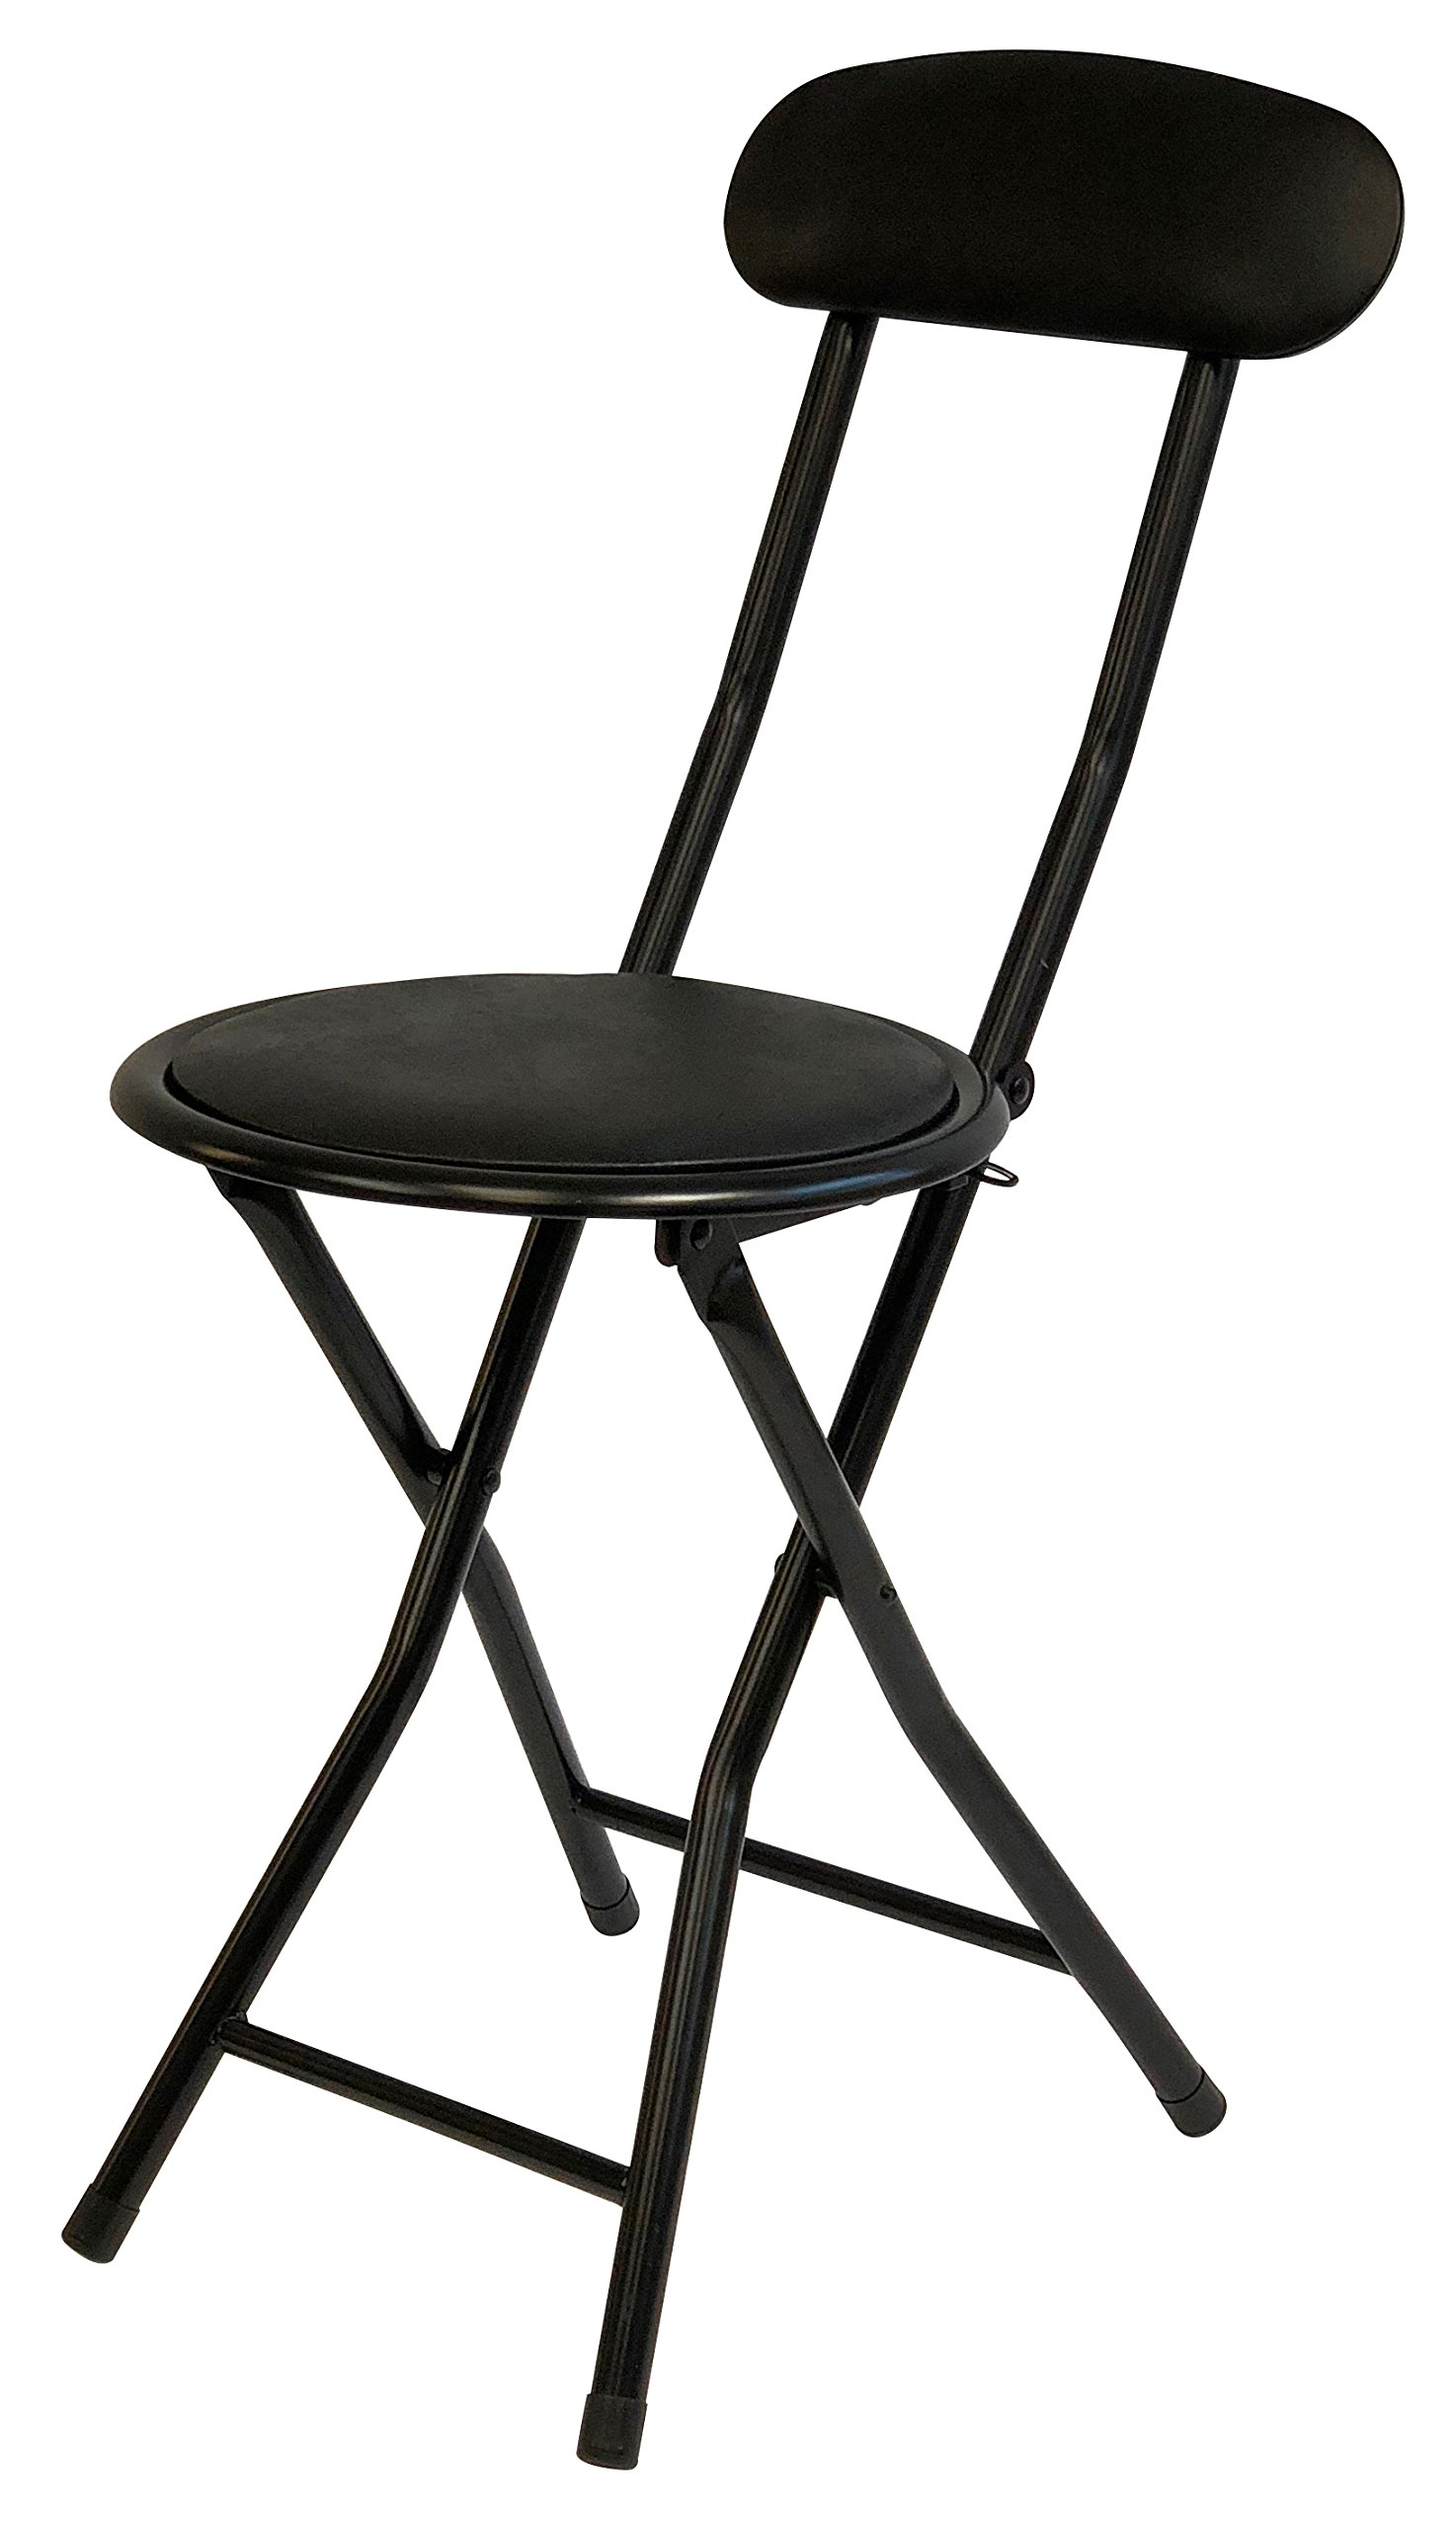 Wee's Beyond 1206 Cushioned Padded Folding Stool